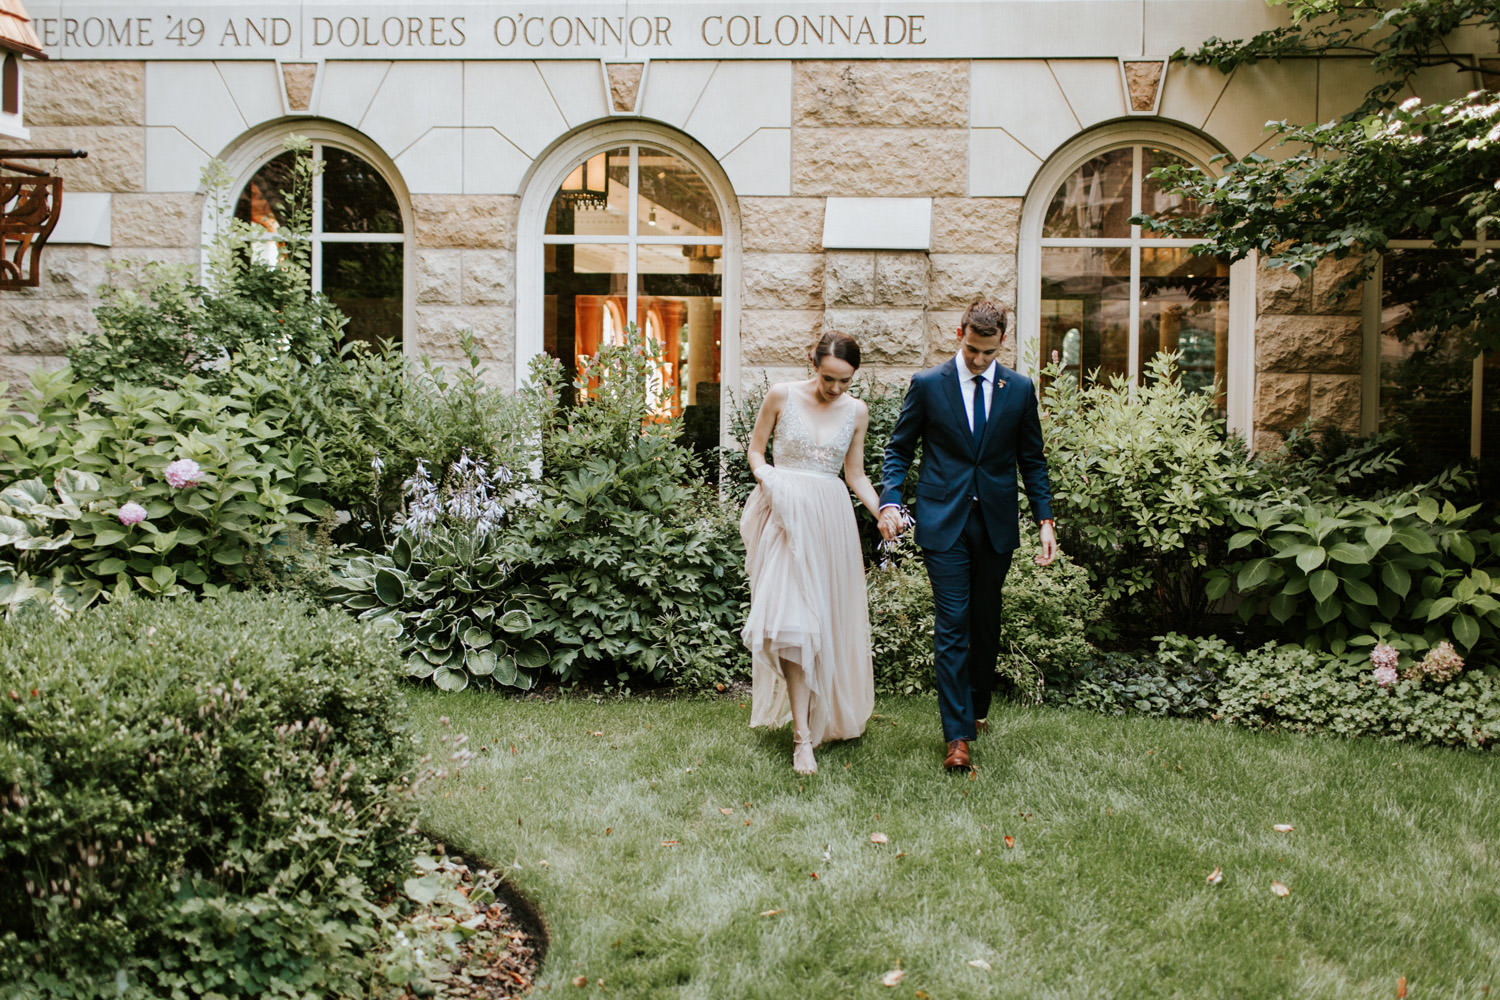 Bride and groom walk together after seeing each other for the first time. Photographed by Mark Trela at Saint Ignatius College in Chicago